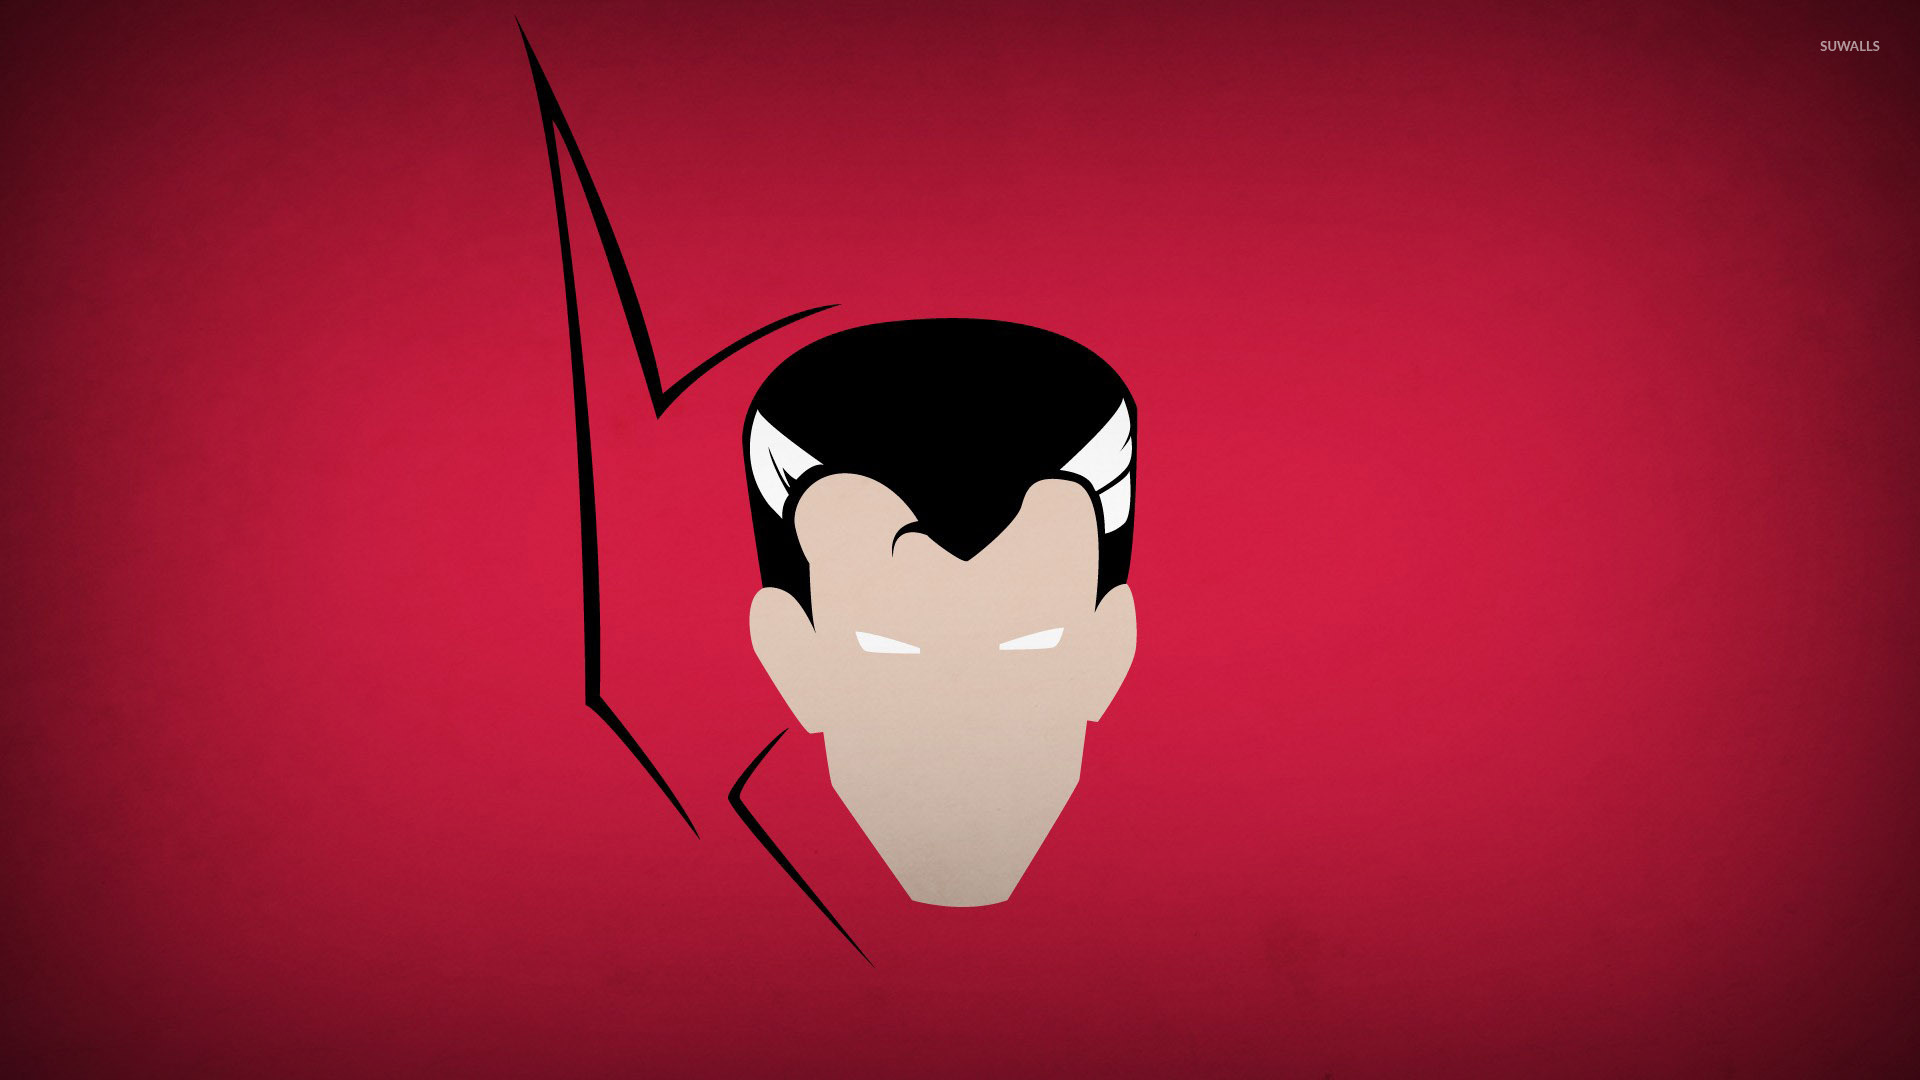 Download Wallpaper Marvel Minimalistic - doctor-strange-head-on-a-pink-wall-49770-1920x1080  You Should Have_946293.jpg